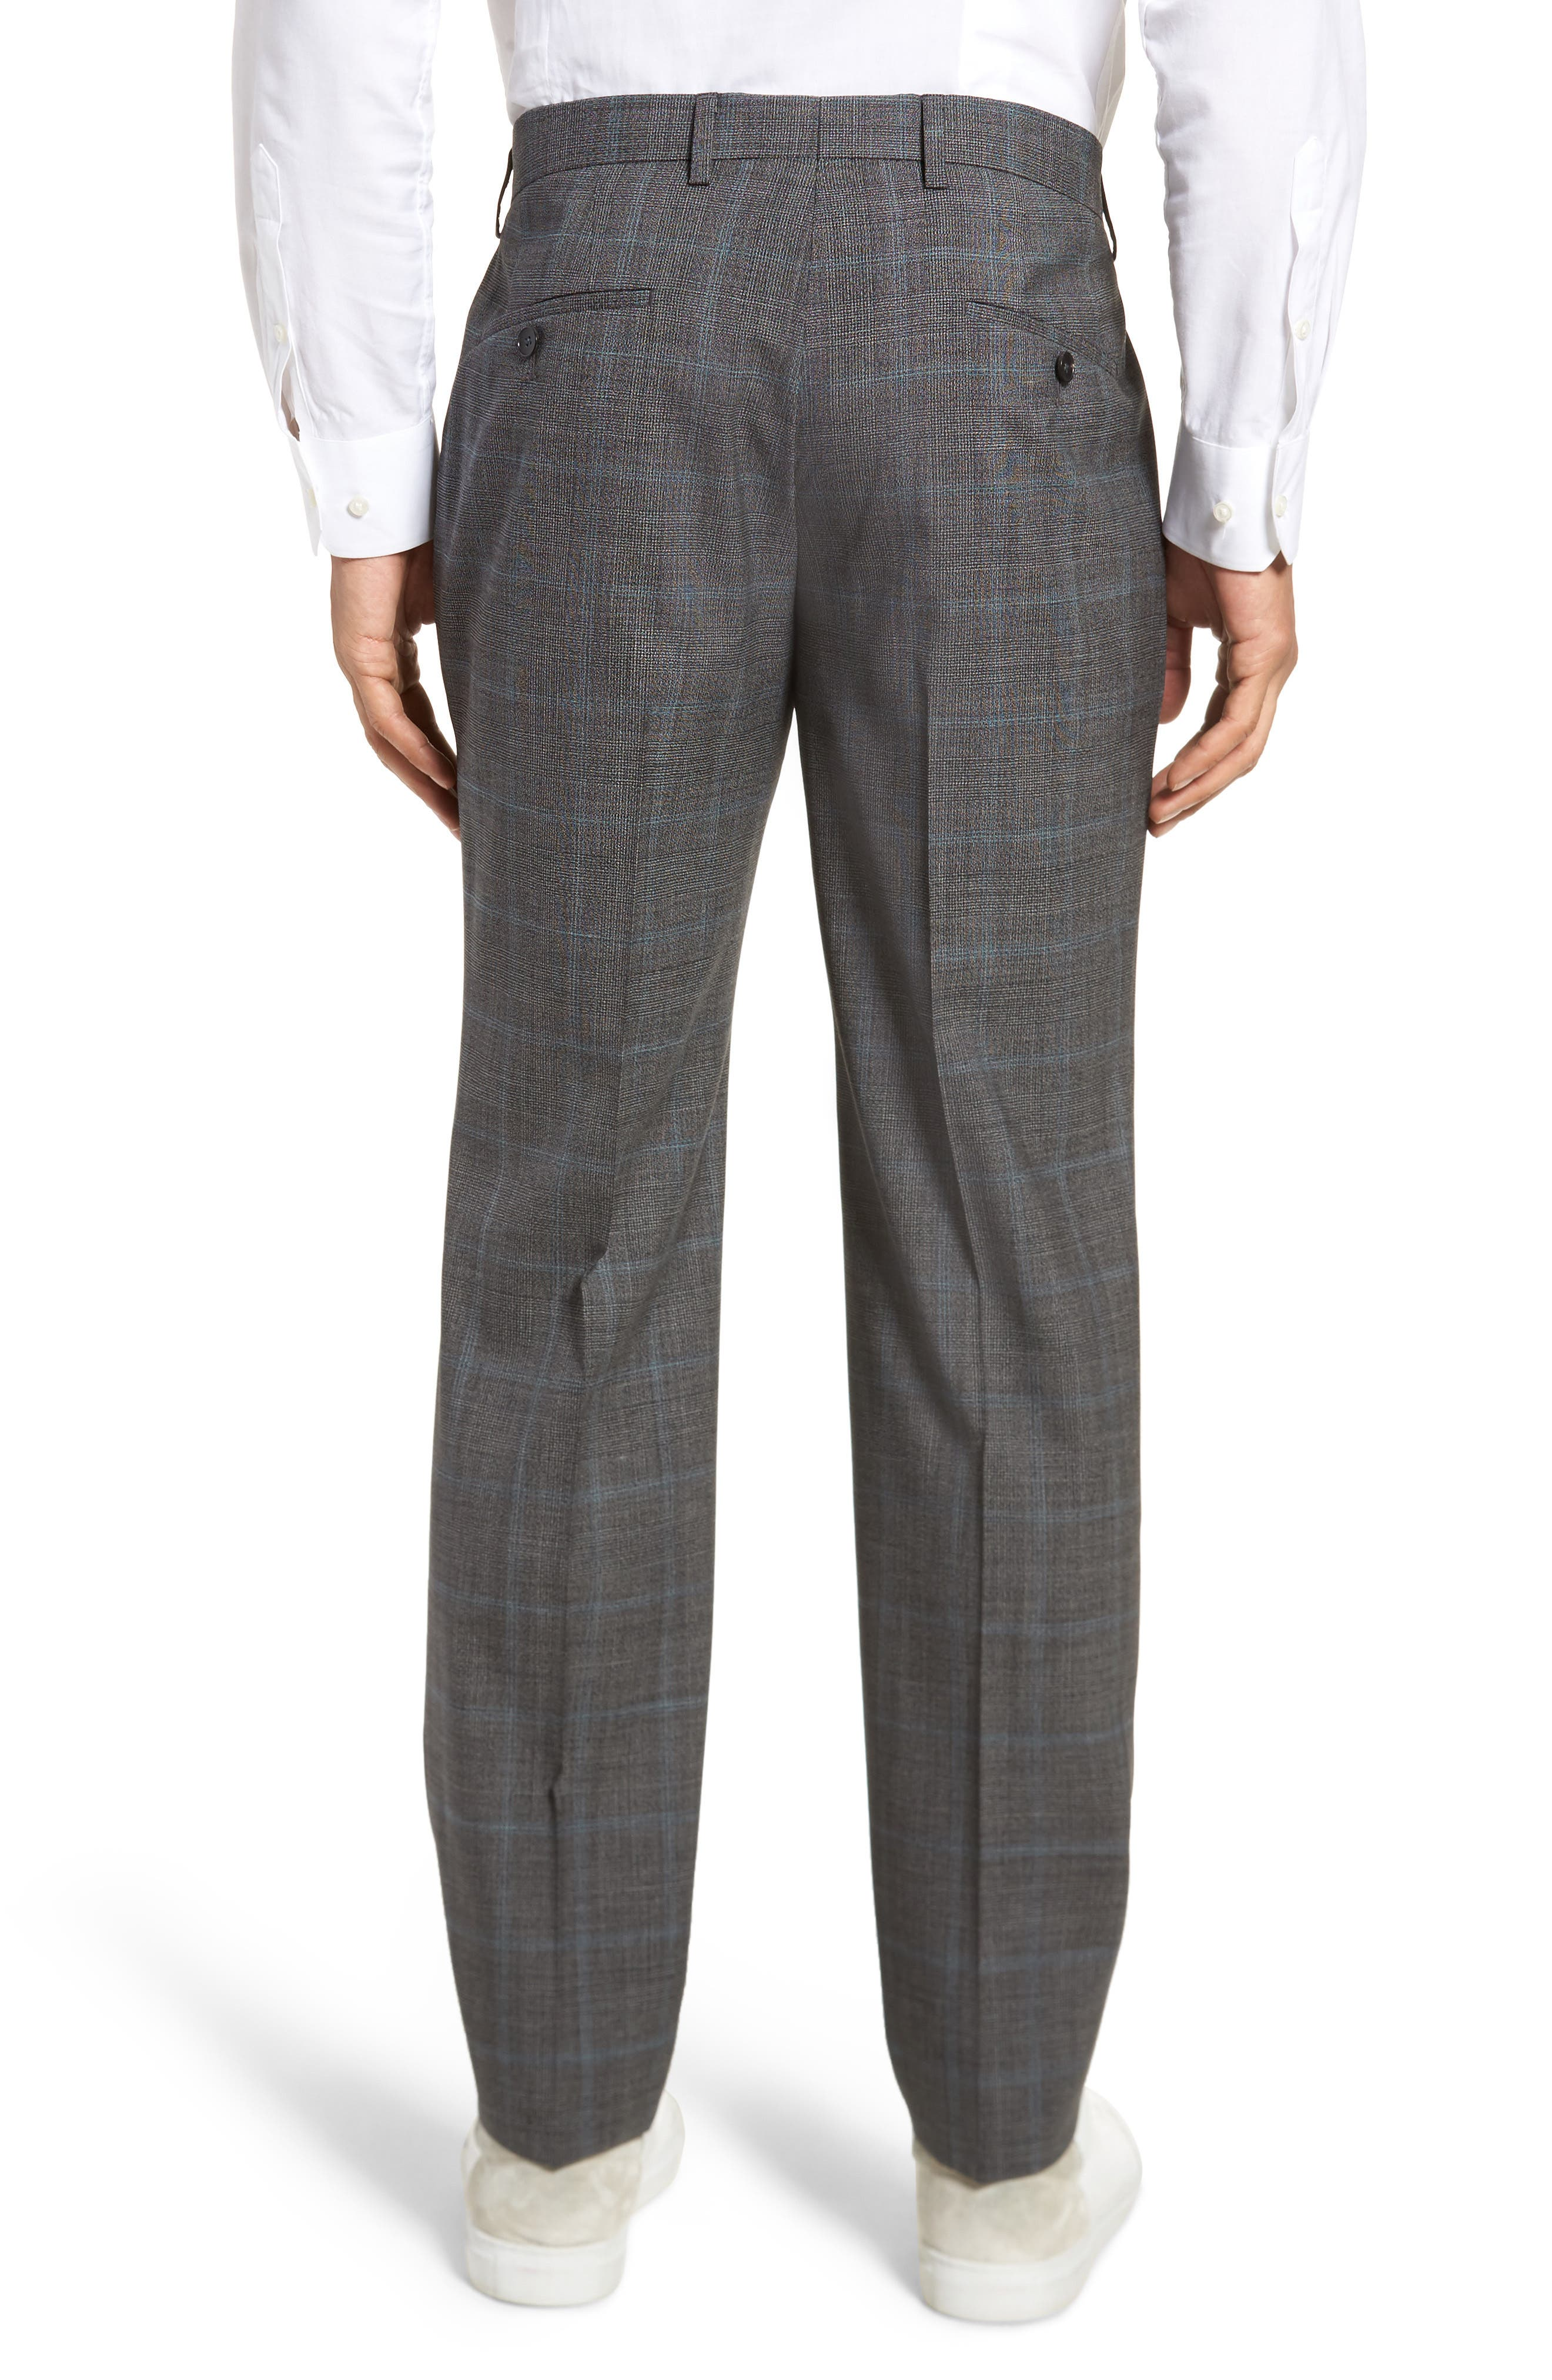 Genesis Flat Front Plaid Wool Trousers,                             Alternate thumbnail 2, color,                             Open Grey